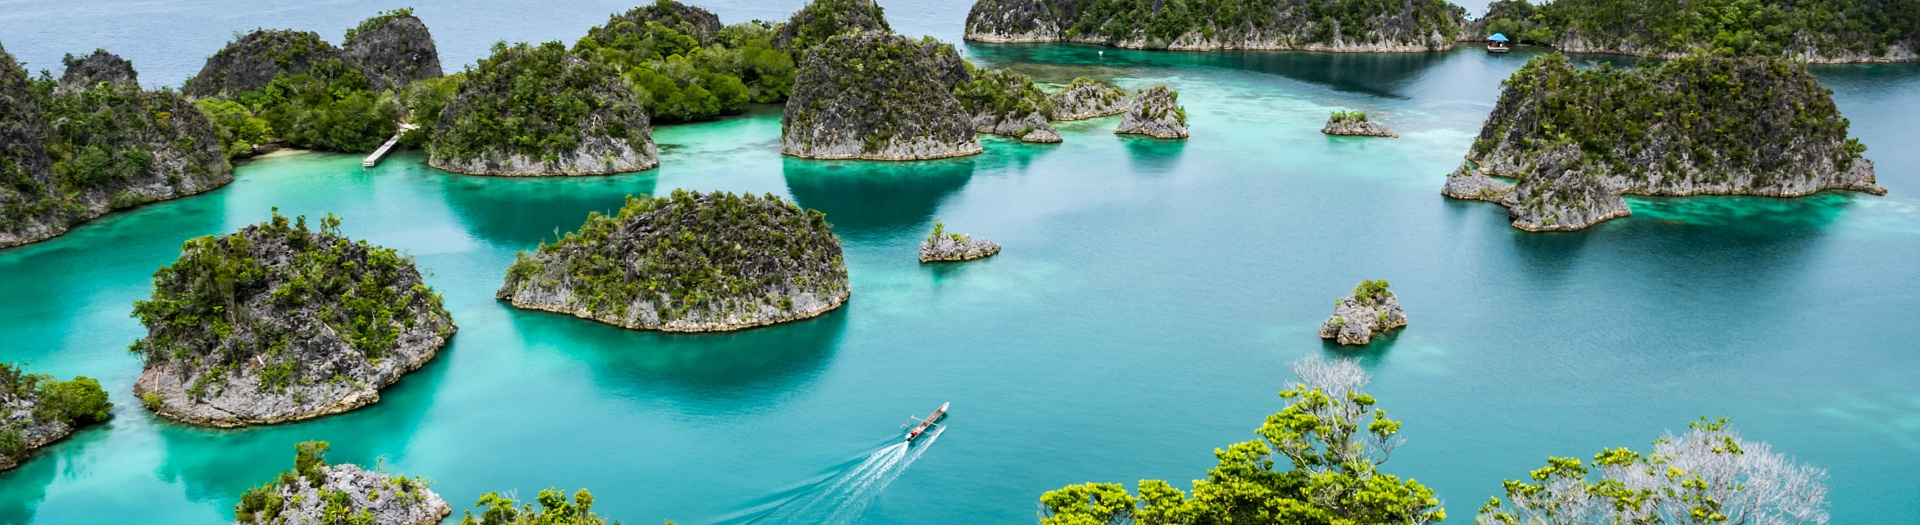 Adventure cruise in Rajat Ampat 10 nights (Sorong - Sorong)